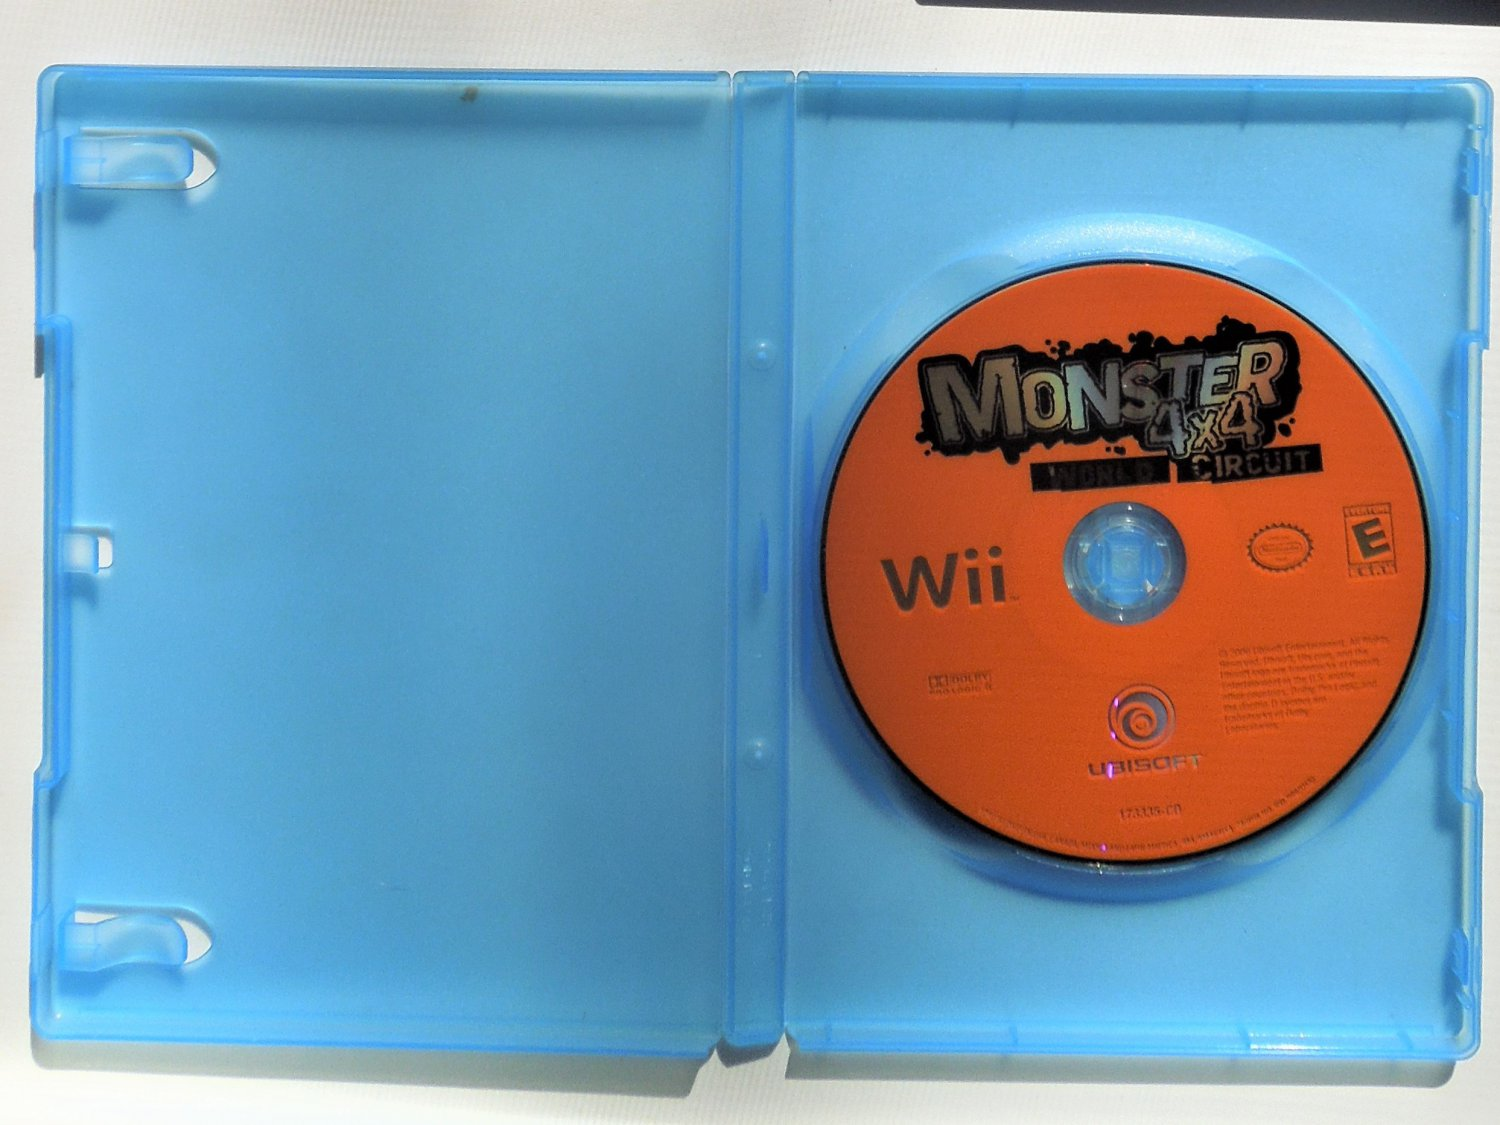 2006 Ubisoft Monster 4x4 World Circuit For Nintendo Wii Game Systems Disc Only